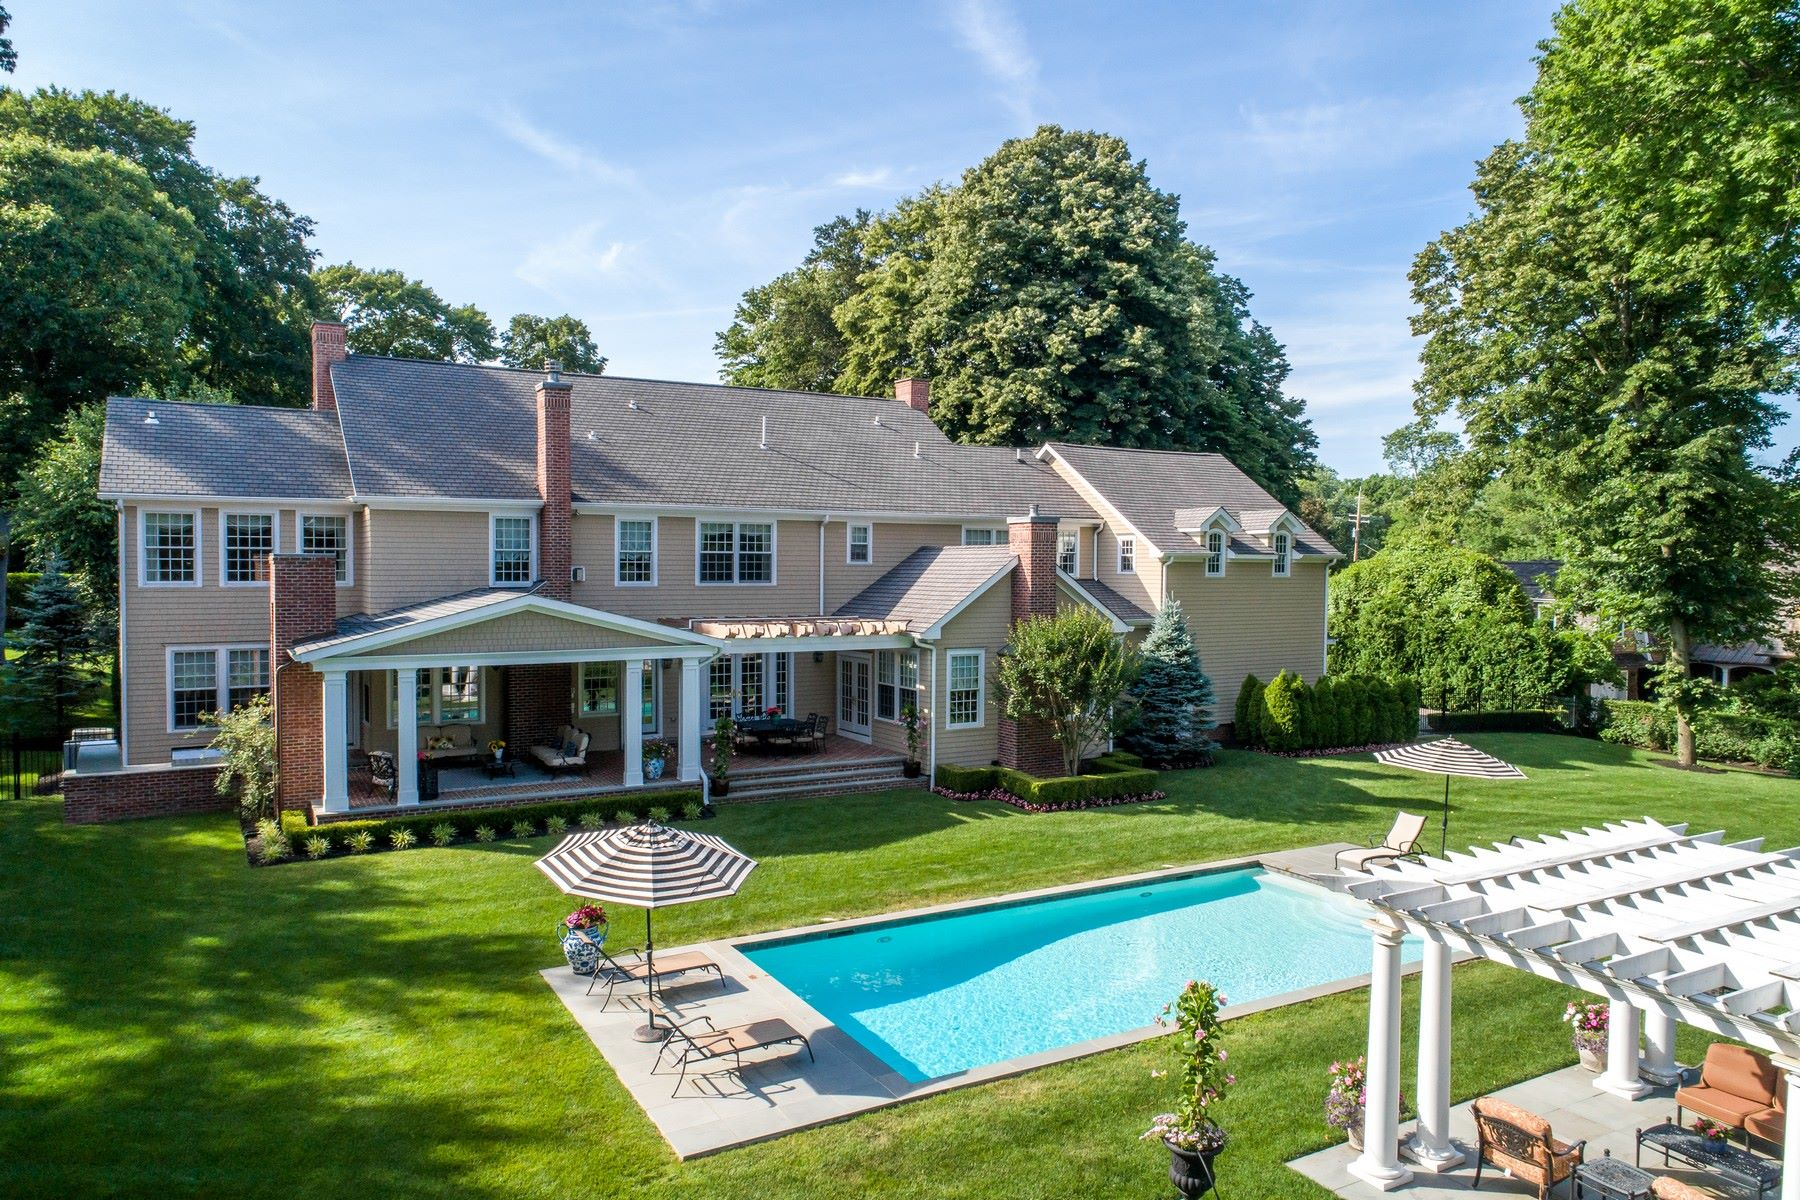 Single Family Homes for Active at Live Inspired 131 Ridge Rd Rumson, New Jersey 07760 United States